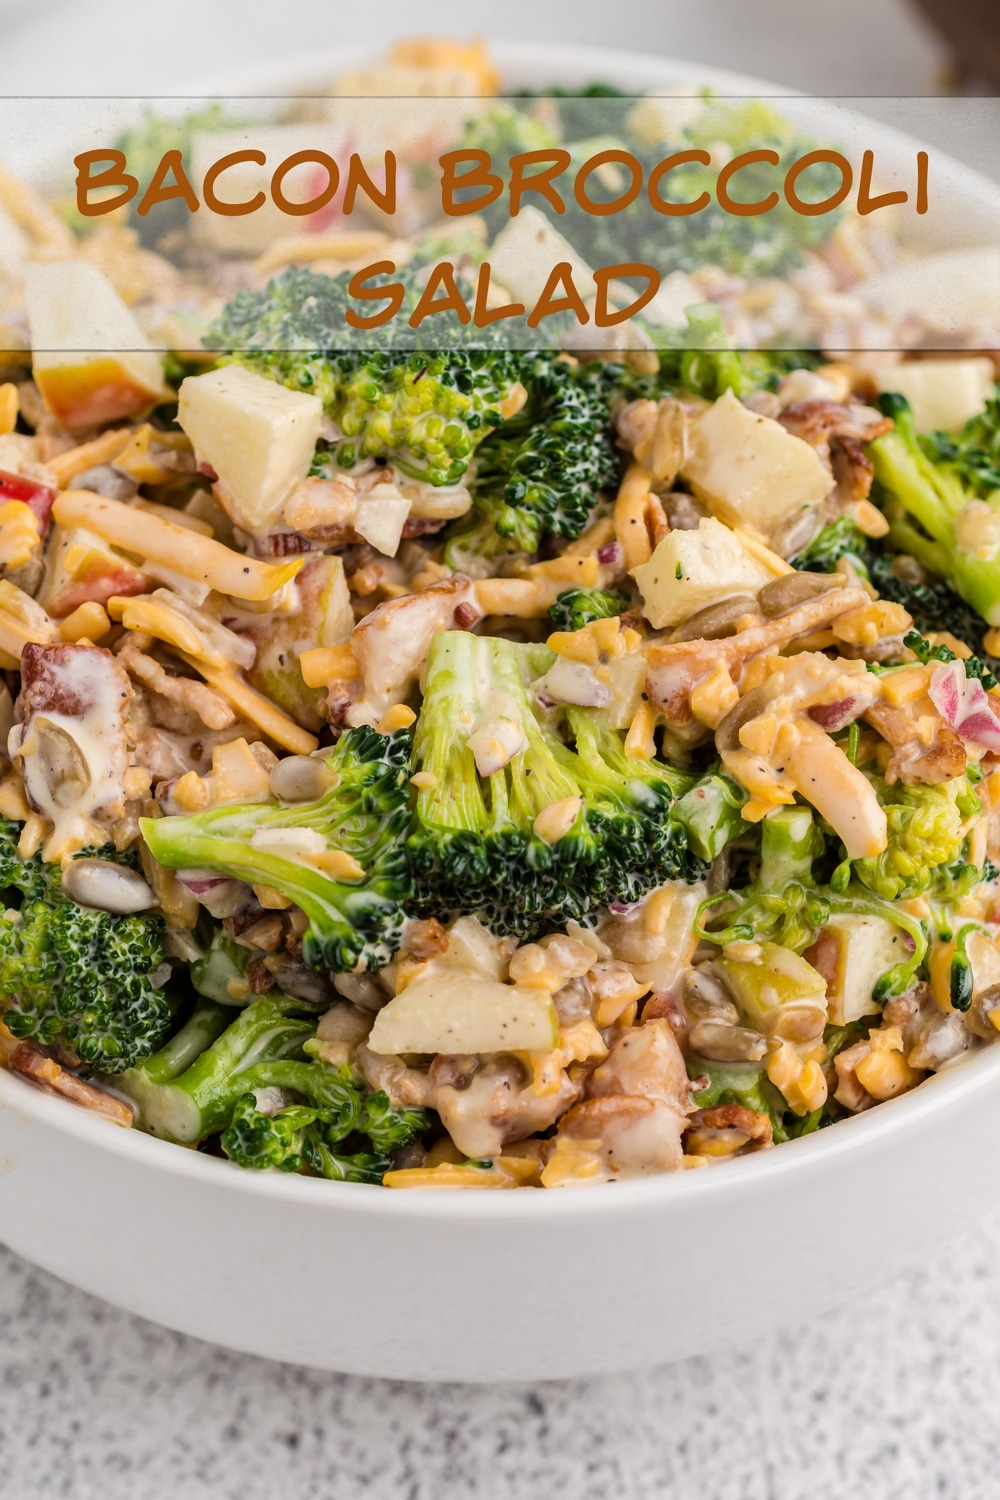 Bacon Broccoli Salad is full of fresh ingredients like broccoli florets and crunchy apple and packed with crispy bacon and sunflower seeds. A light and tangy dressing pulls it all together. via @cmpollak1